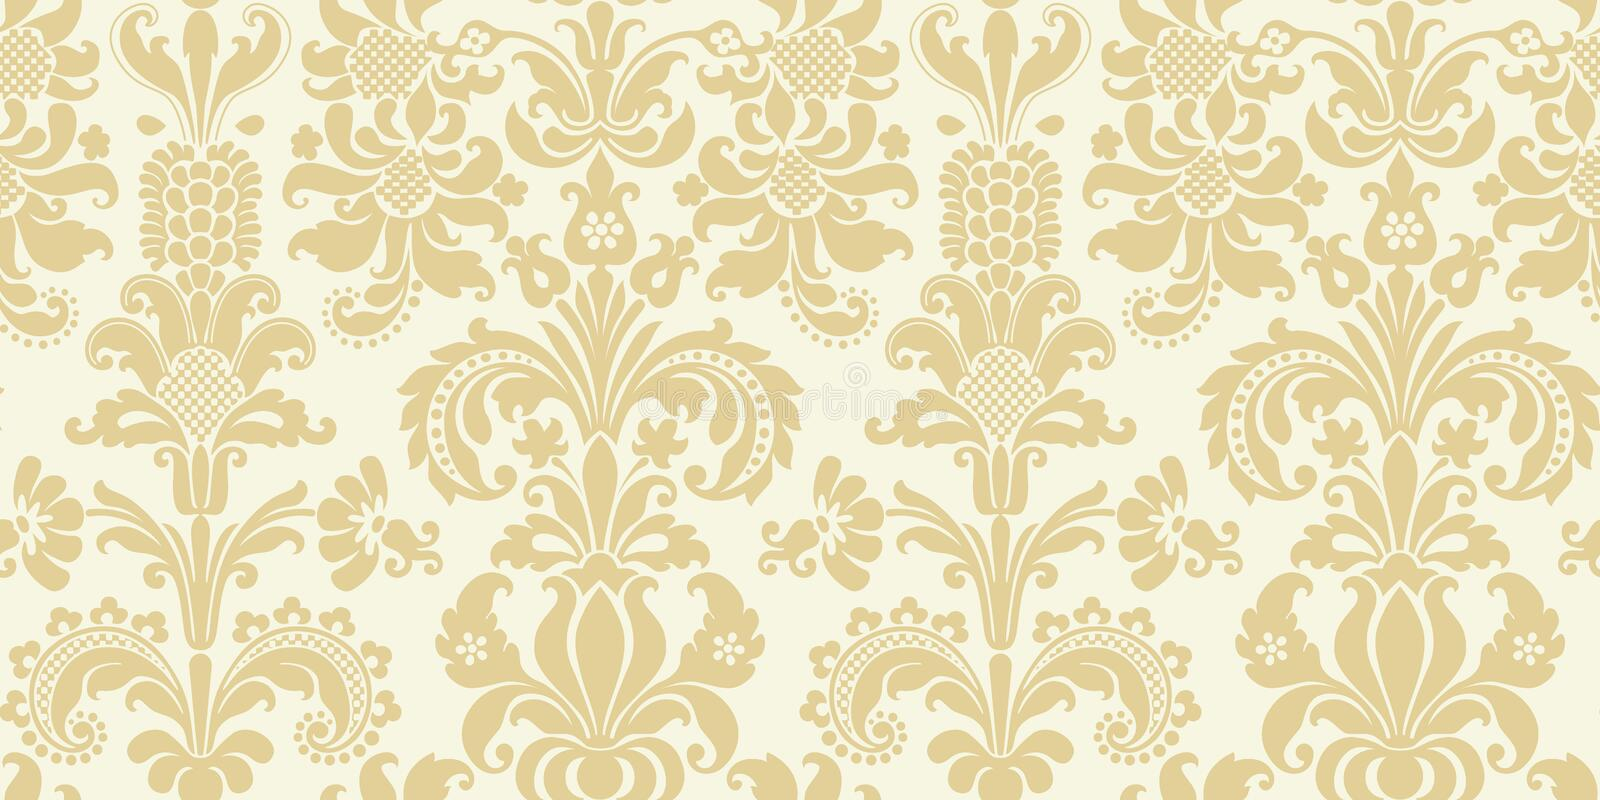 Download Vector Seamless Floral Damask Pattern Stock